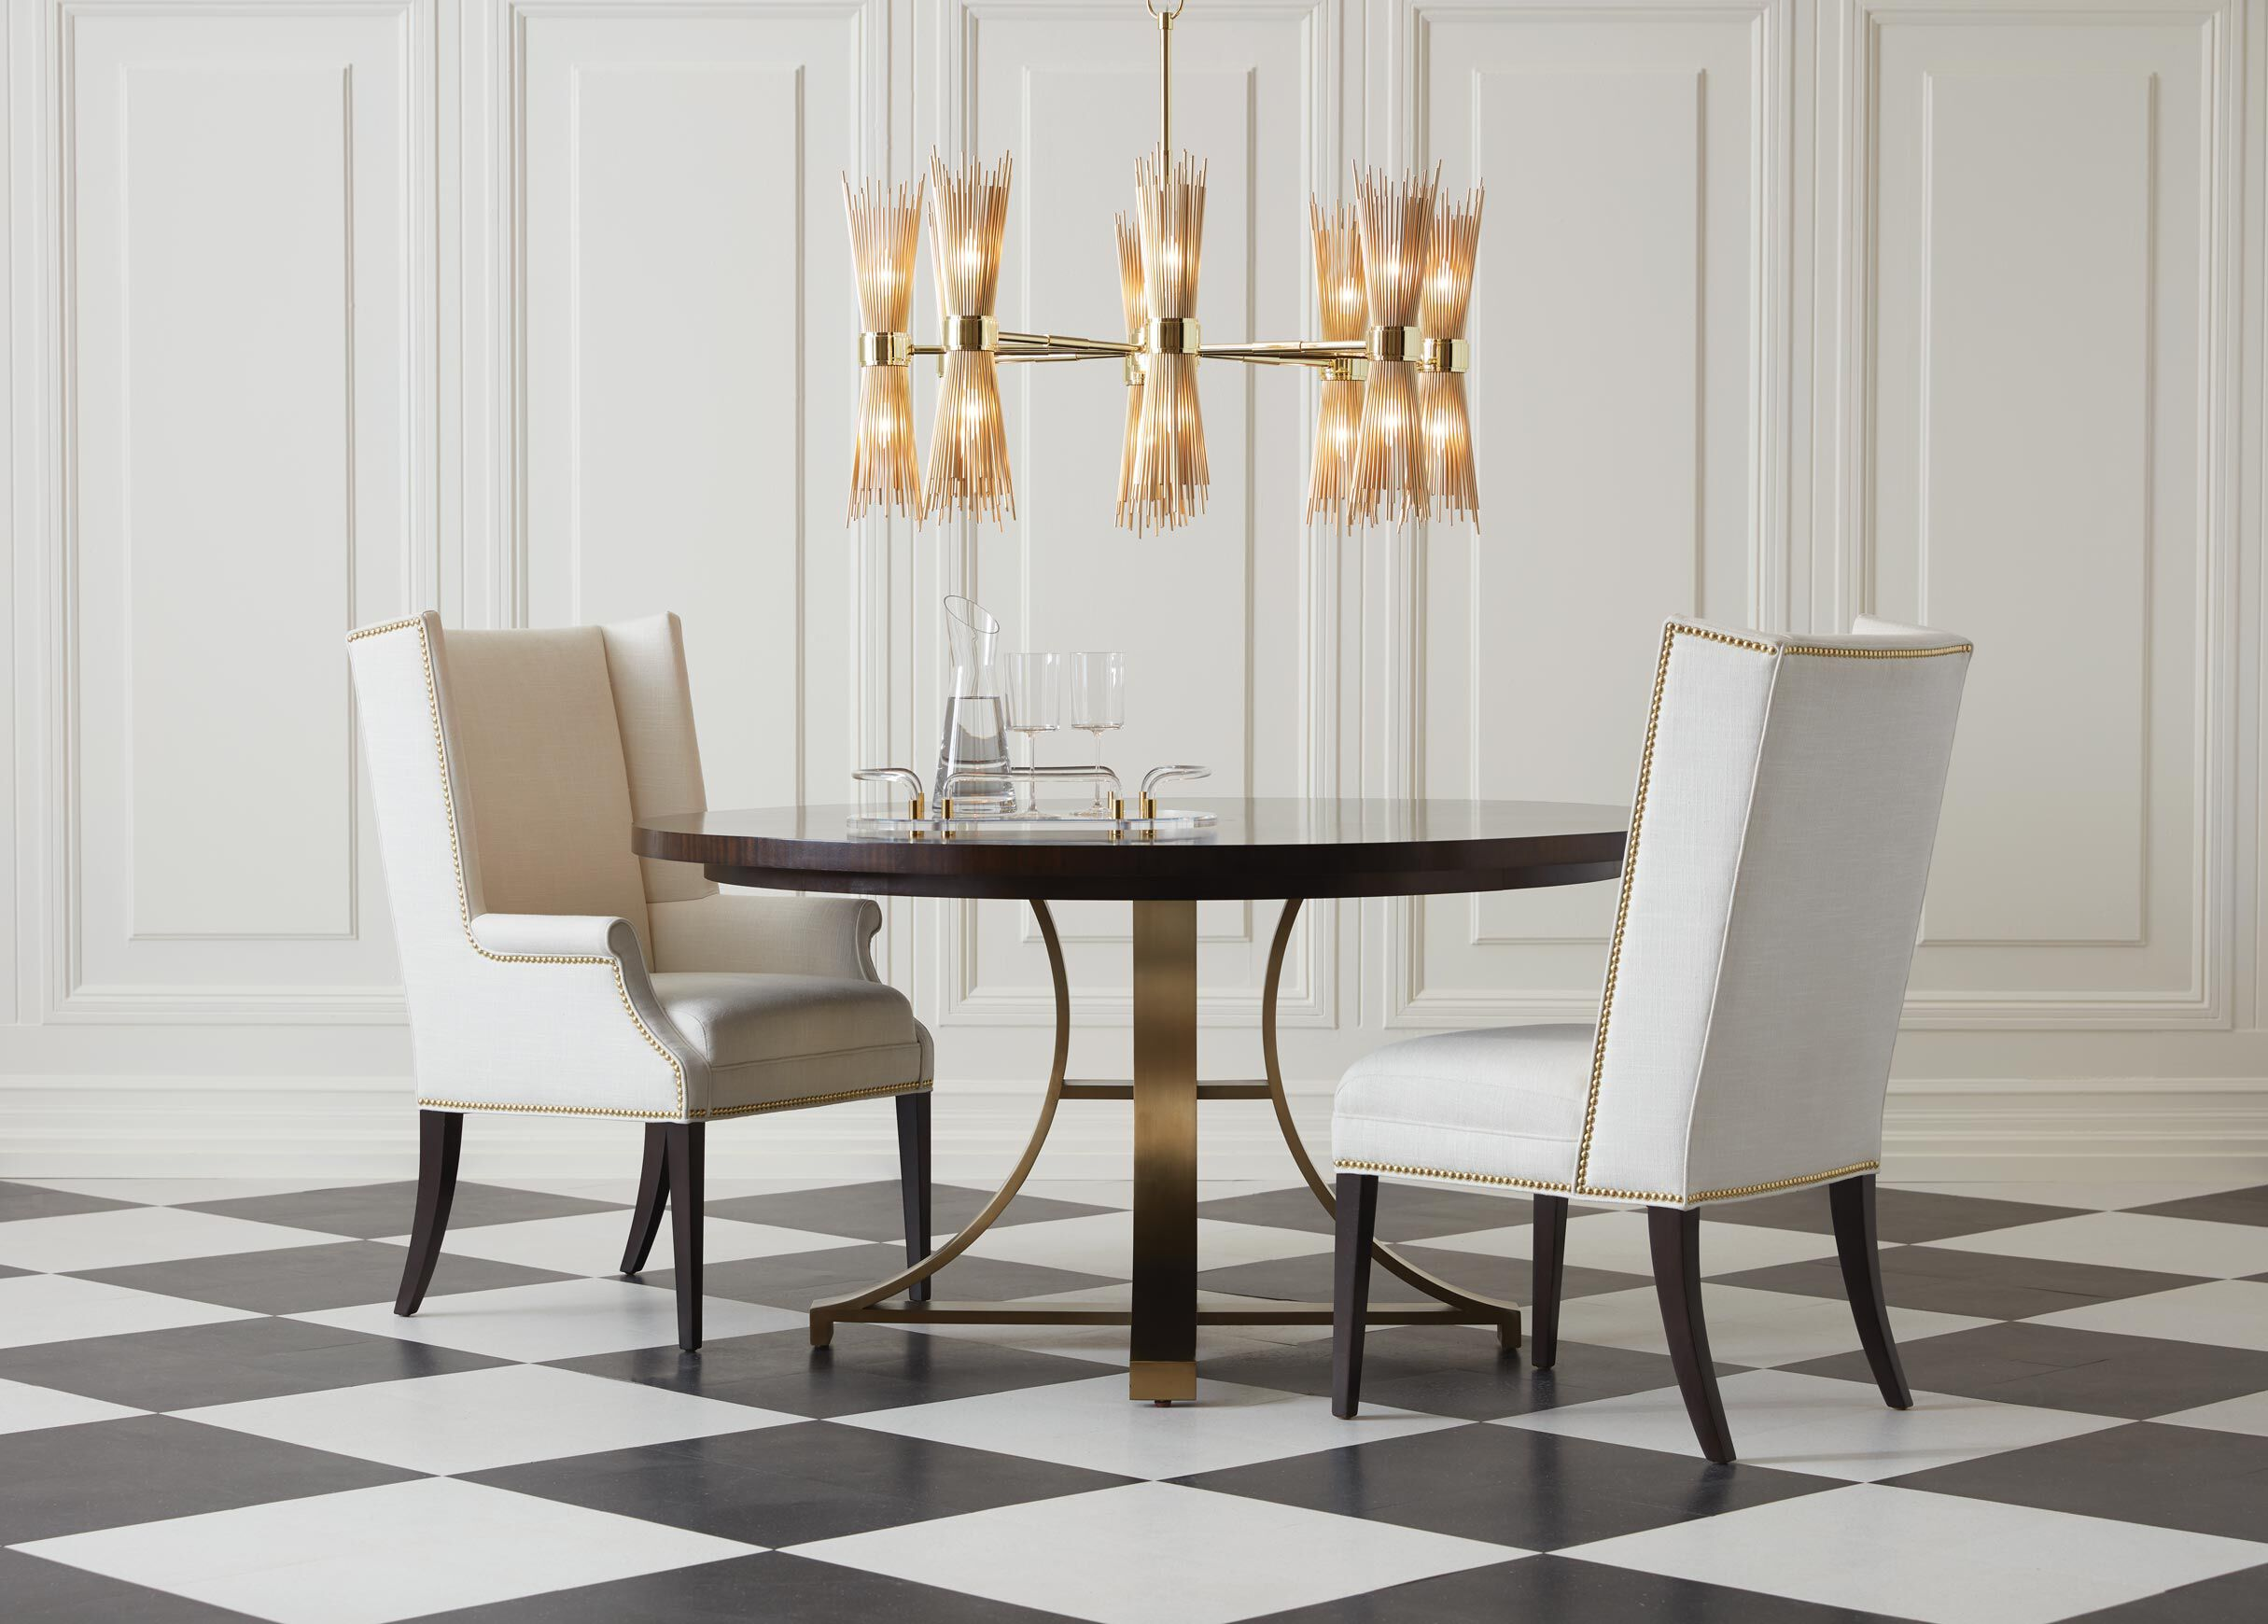 ethan allen dining room chairs moon chair target australia yves side